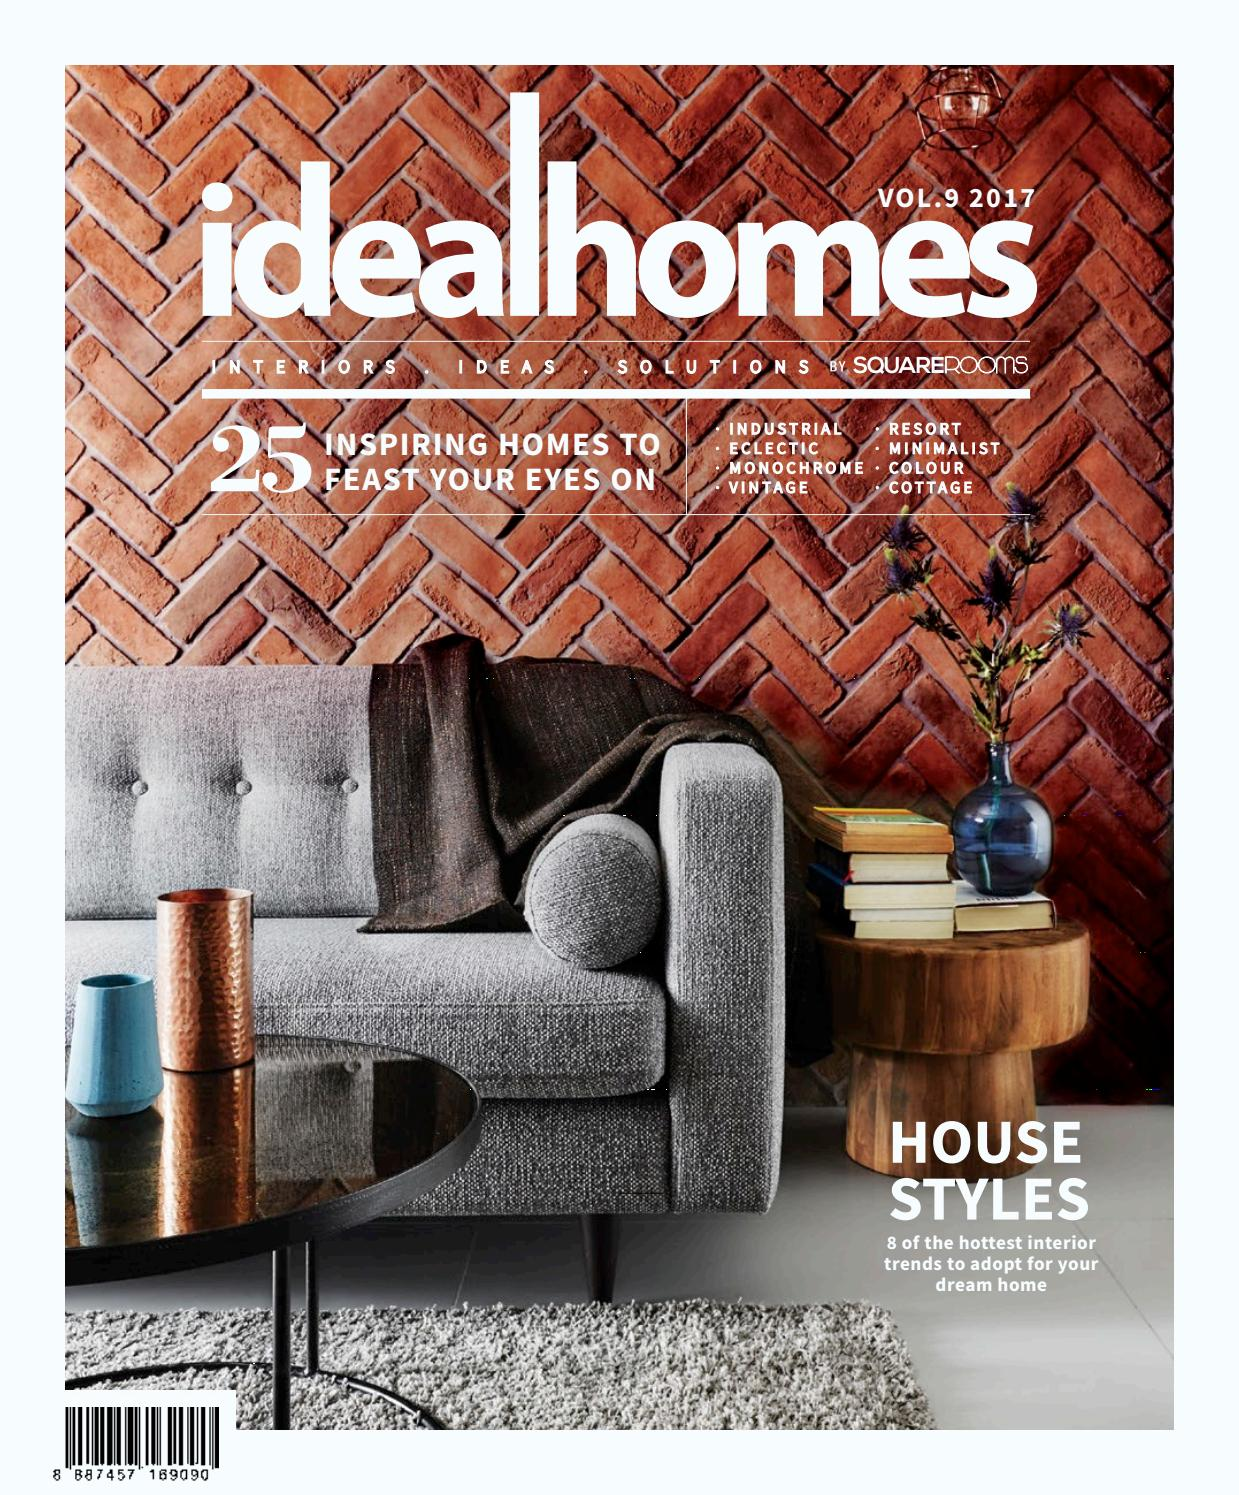 Idealhomes Vol 9 2017 By SquareRooms   Issuu